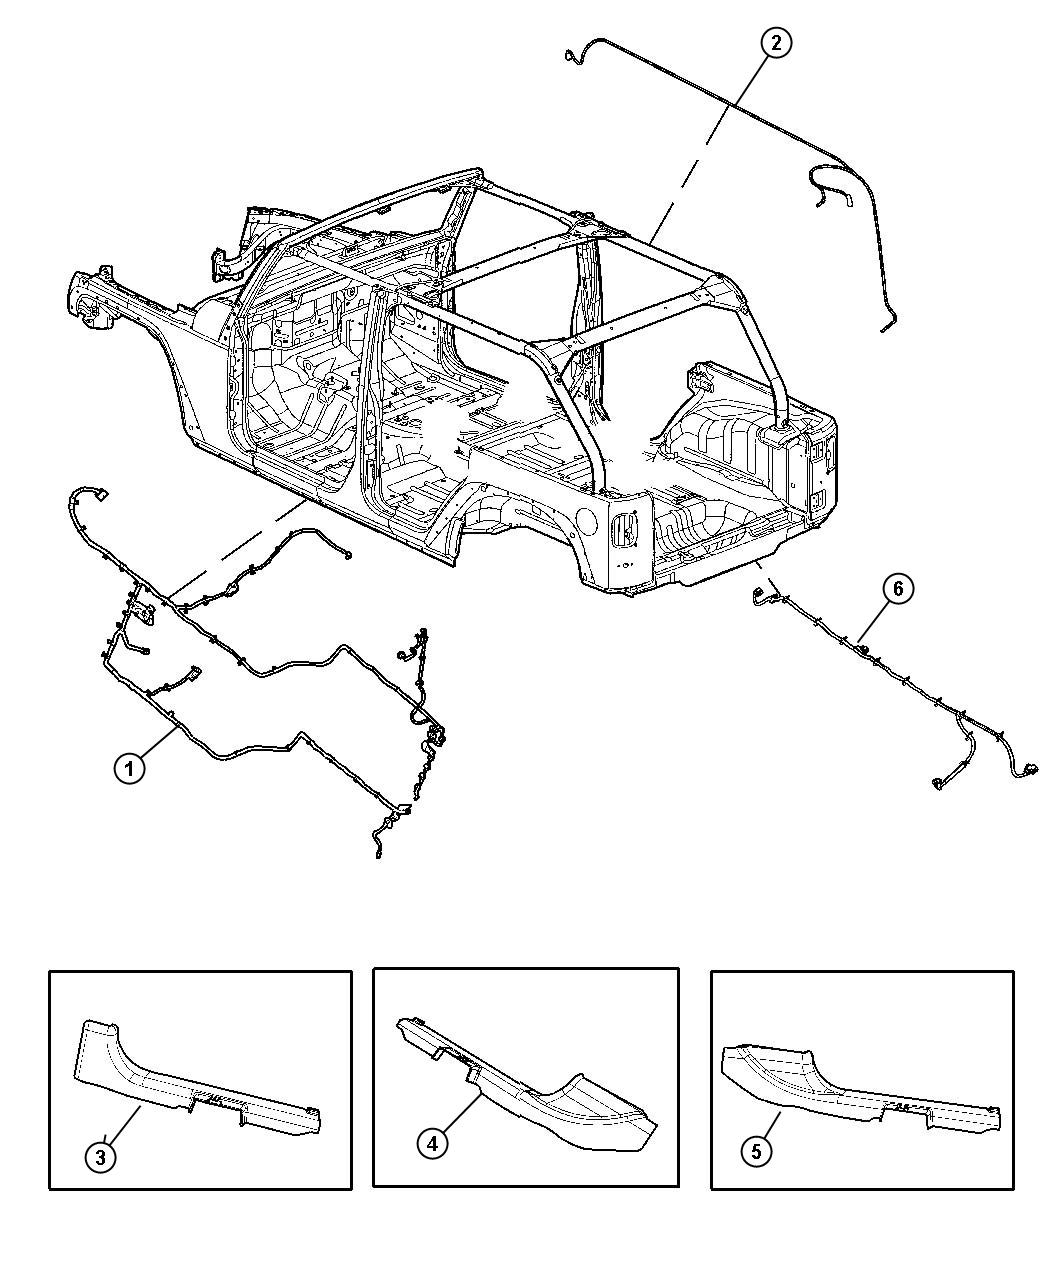 Jeep Wrangler Wiring. Body. [[pwr windows, front 1-touch